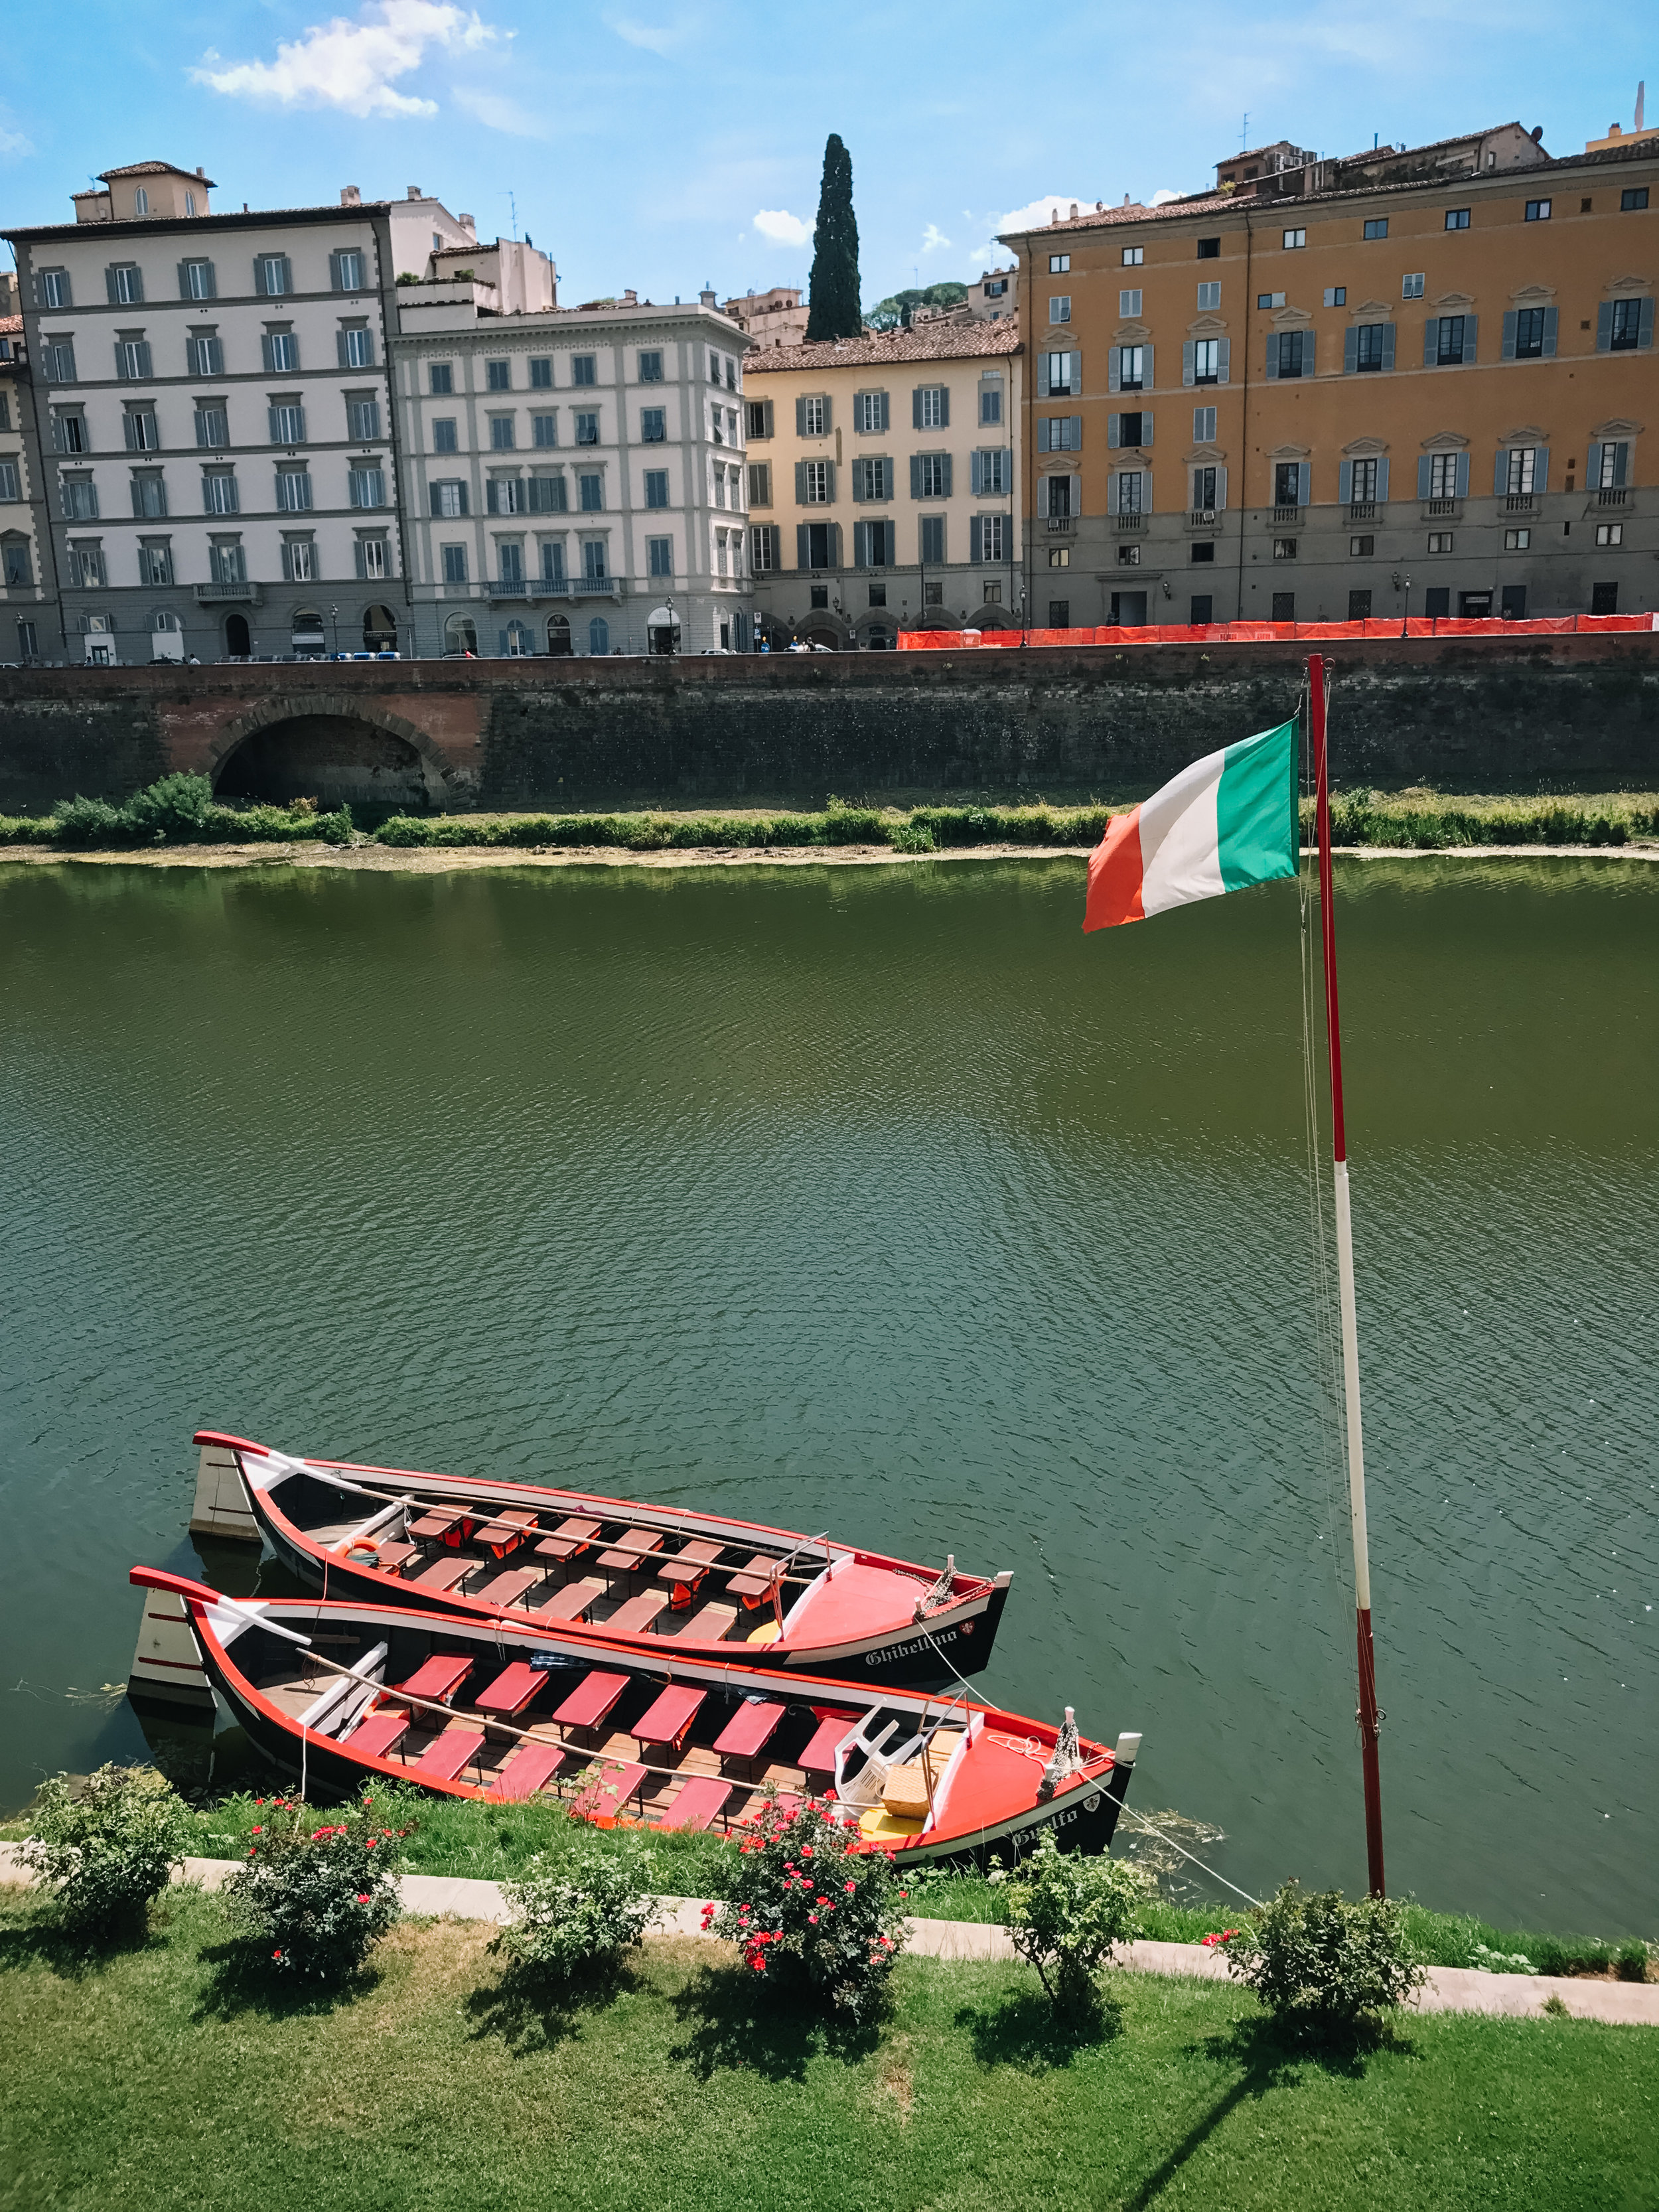 Italy-Florence and Tuscany-2.jpg